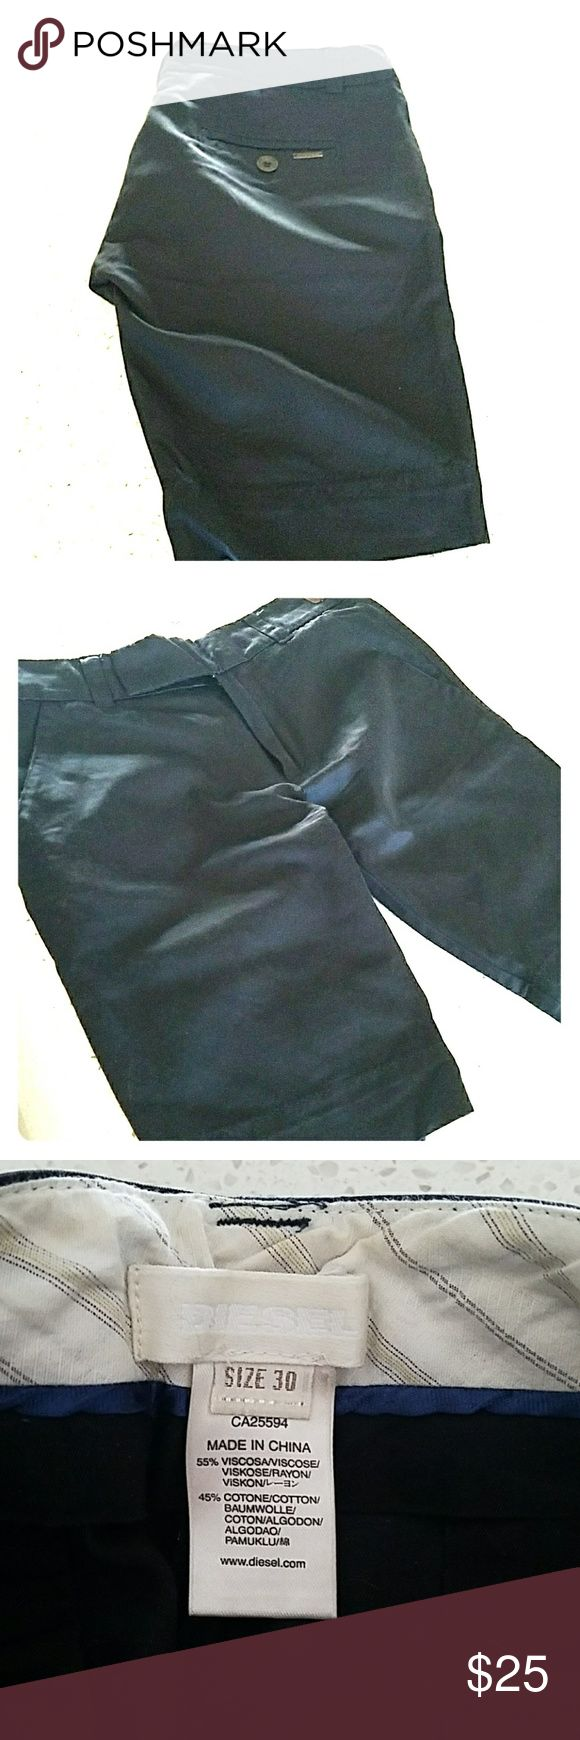 Womens black Diesel dress shorts Raw silk, muted satin look and feel. Size 30 but fit like a 28 or snug 29. No fading, snags or holes. Diesel Shorts